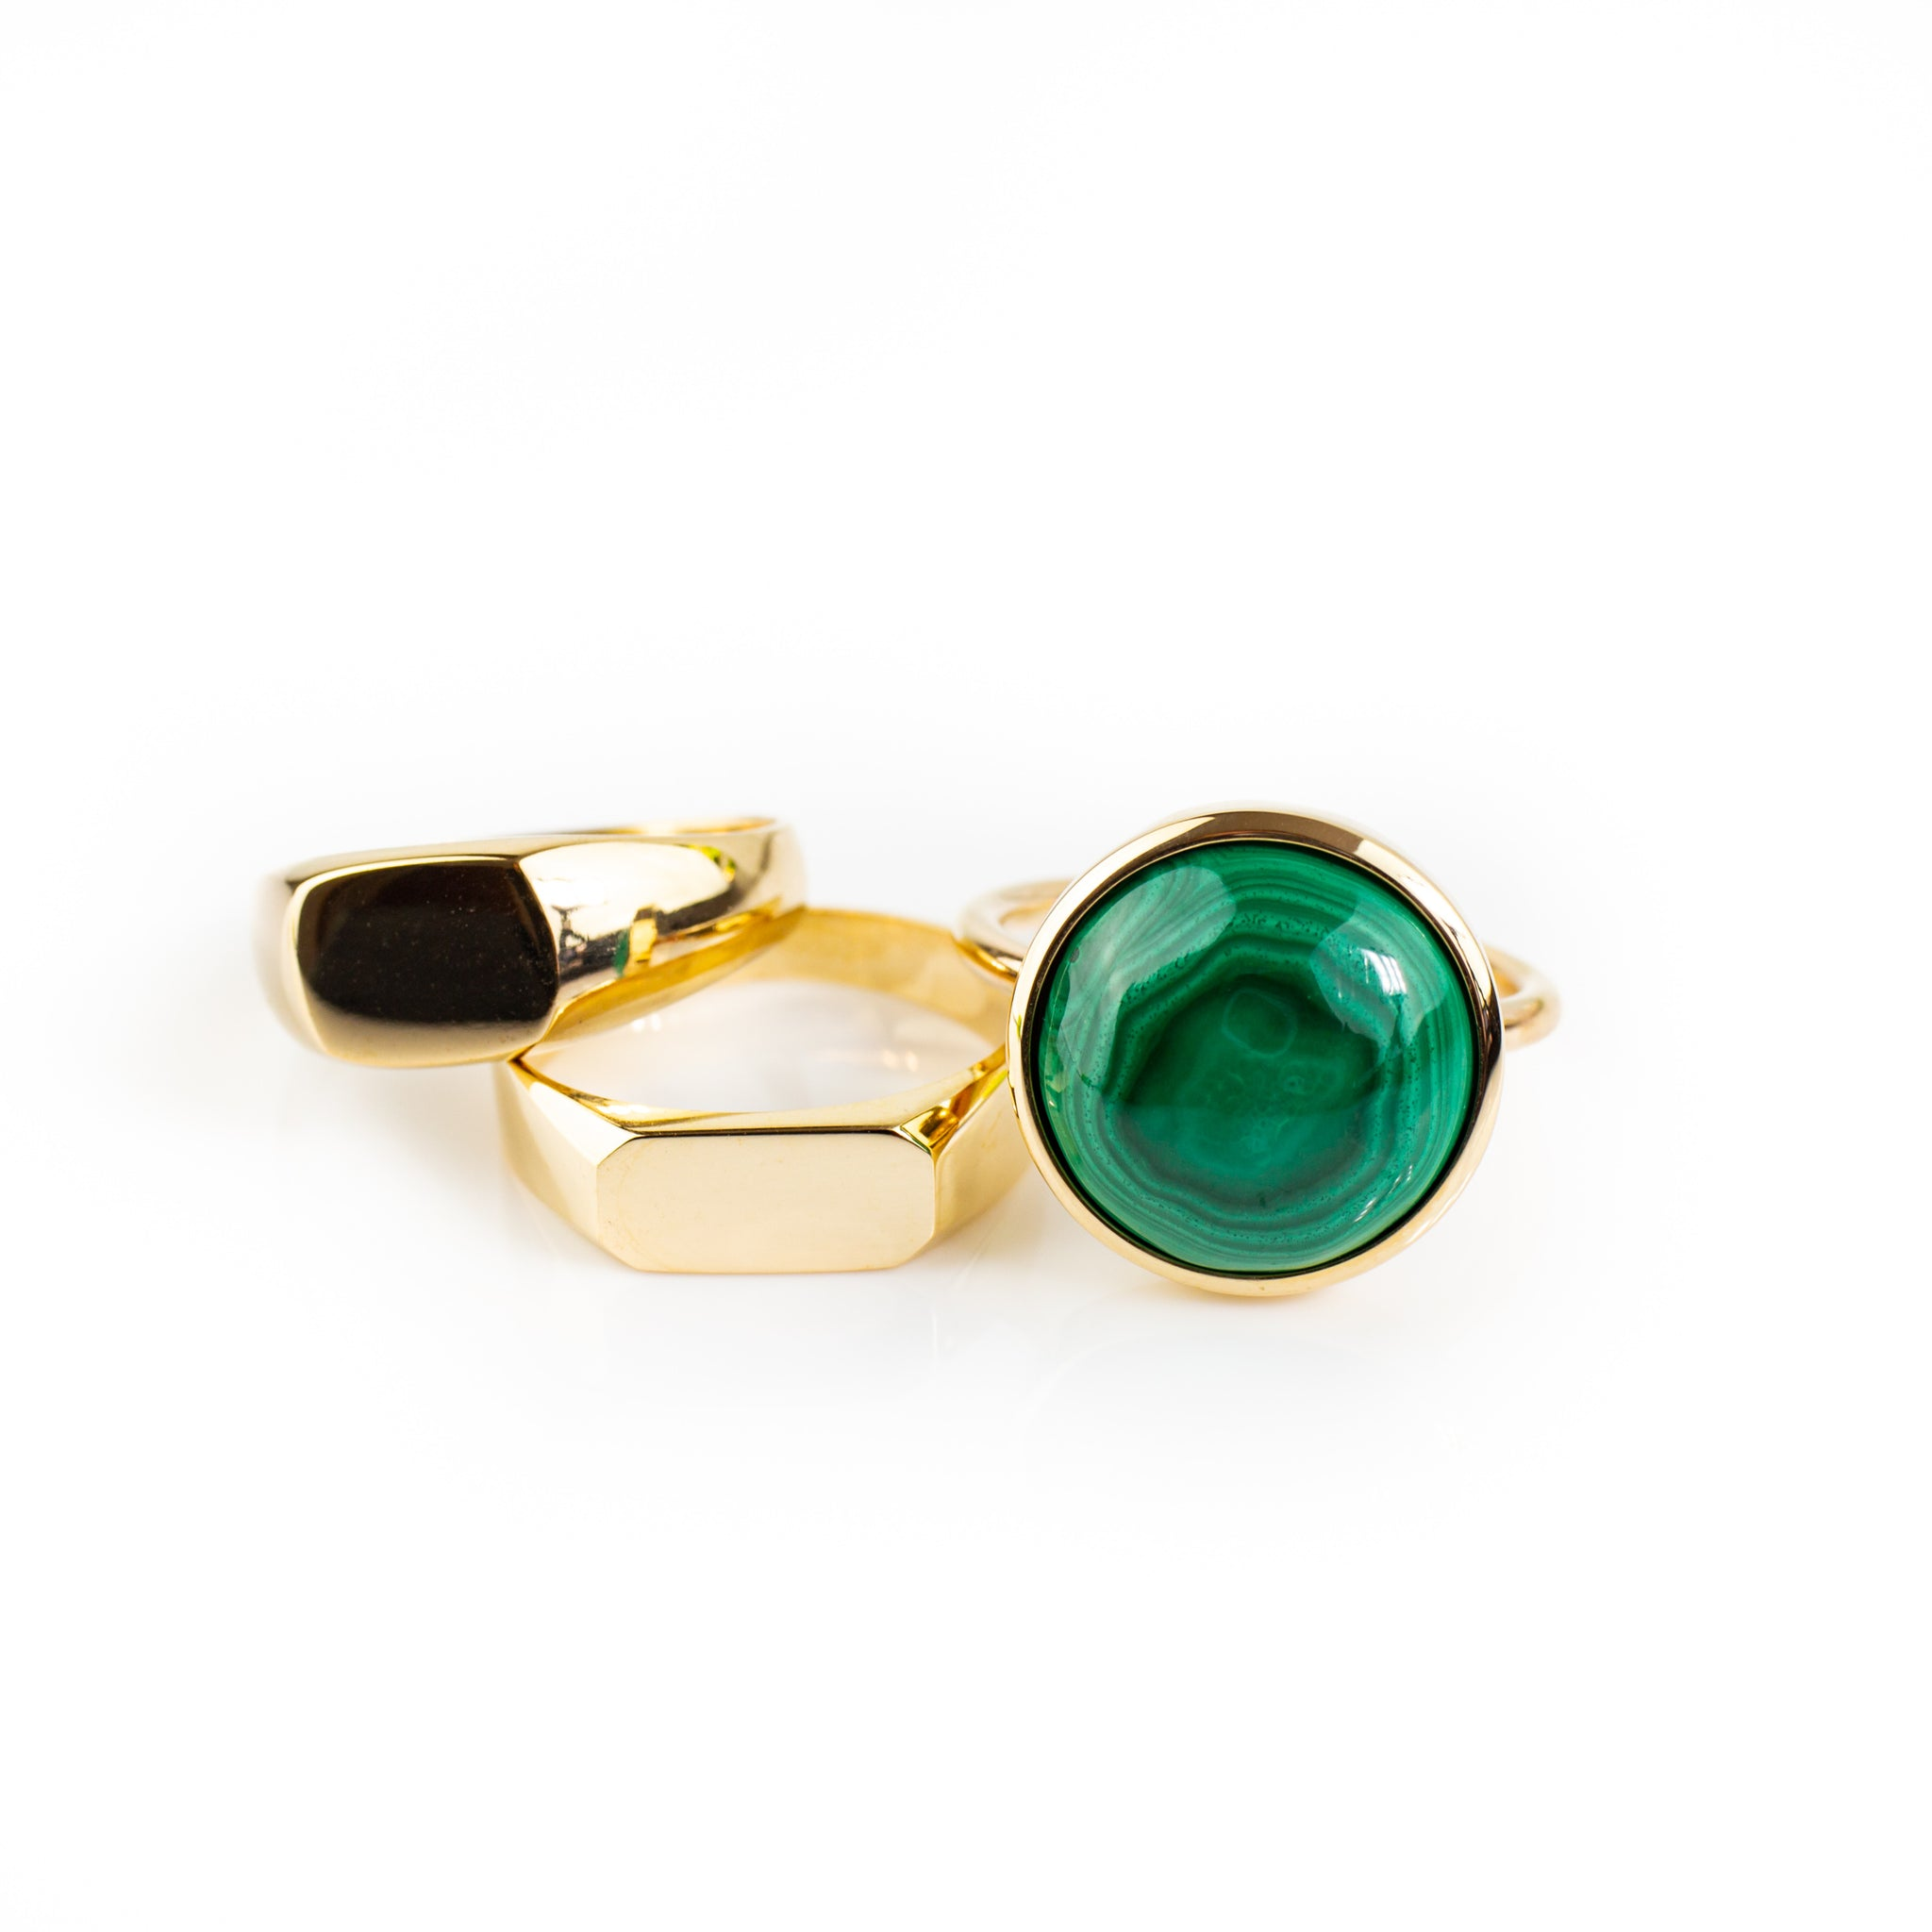 Malachite ring in gold by Tamahra Prowse. Bespoke handcrafted jewellery. Made in Australia